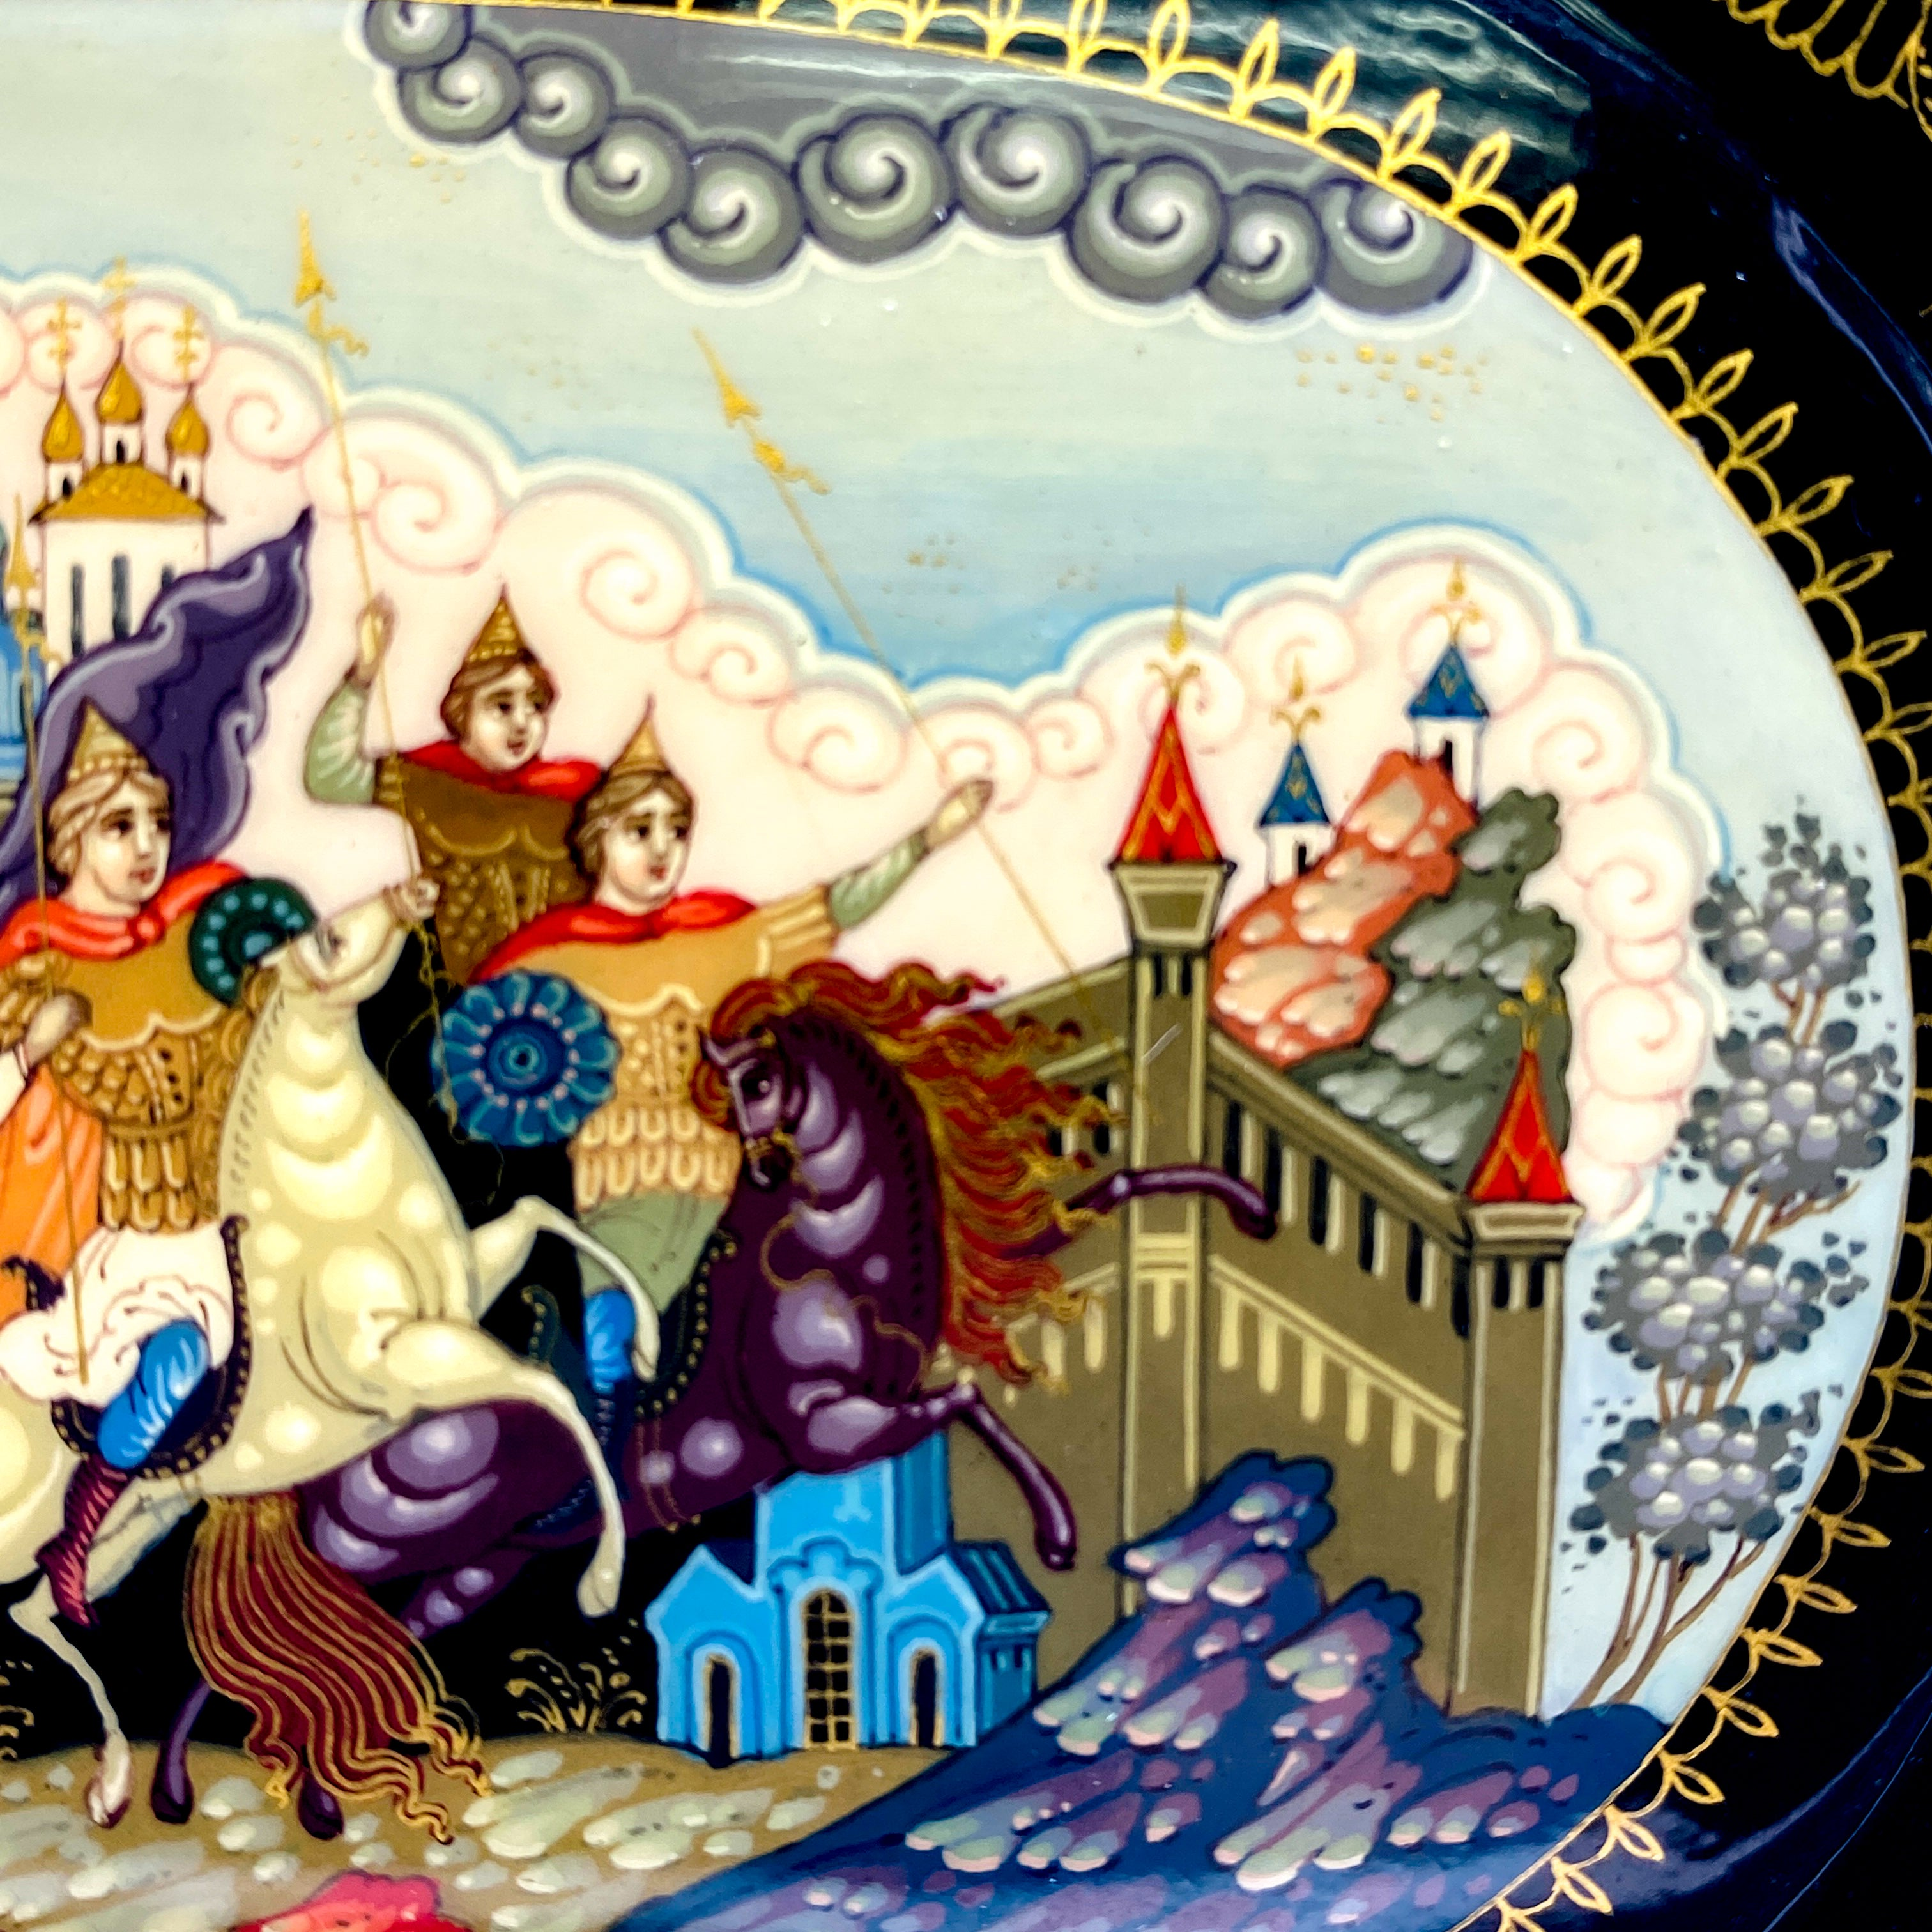 Fairy Tales, Architecture, Animals, King, Travelers, Soldiers Story Detaileld on Lacquer Box